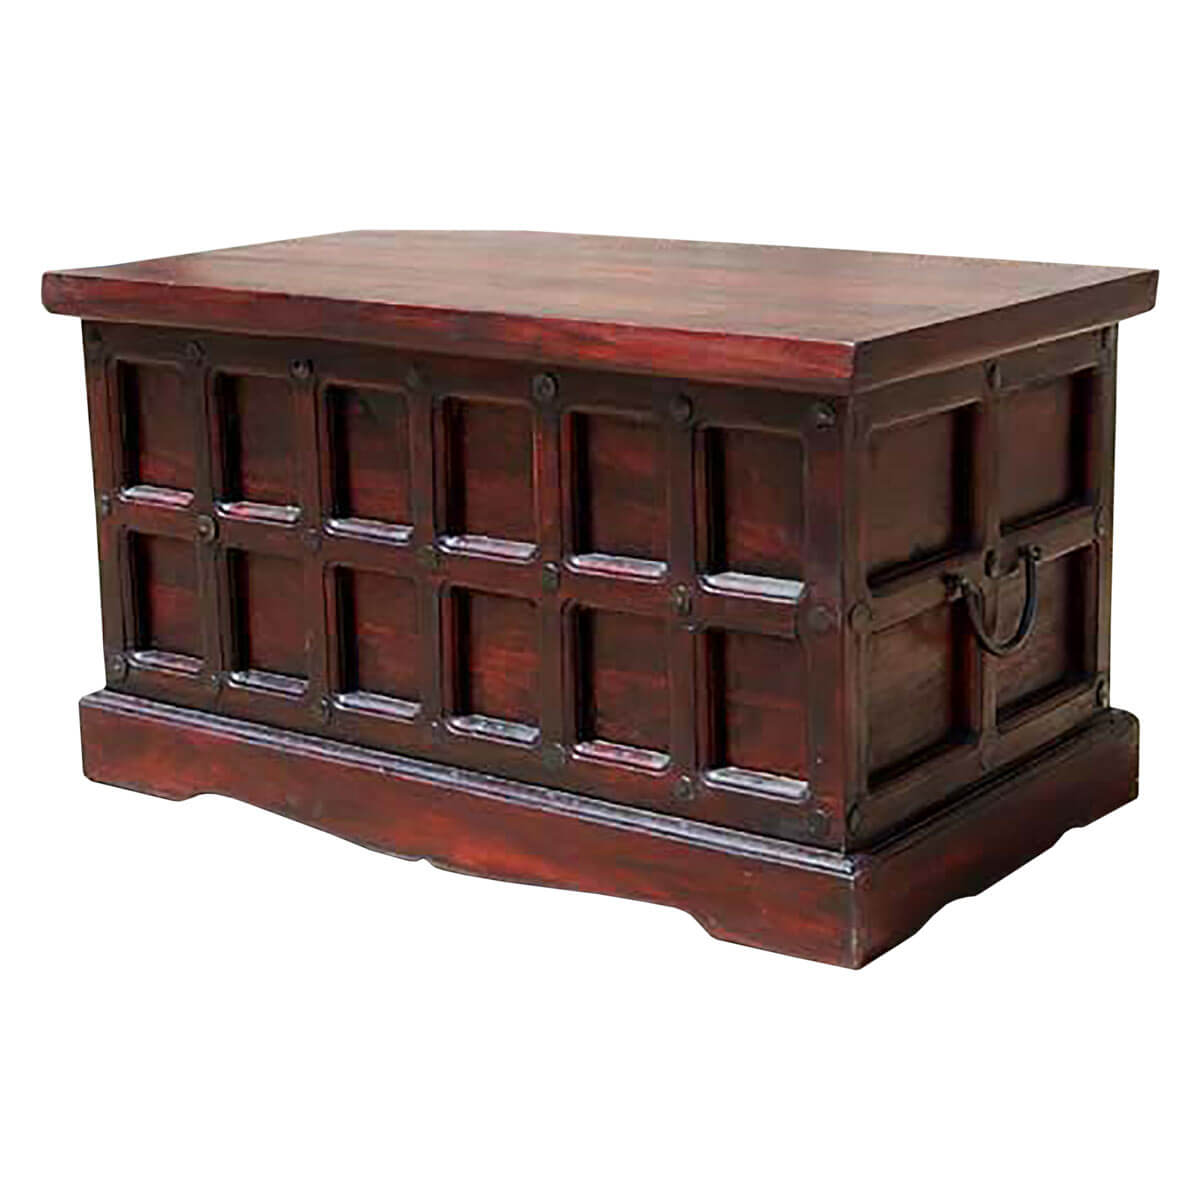 beaufort solid wood storage chest trunk box coffee table - Storage Chest Trunk